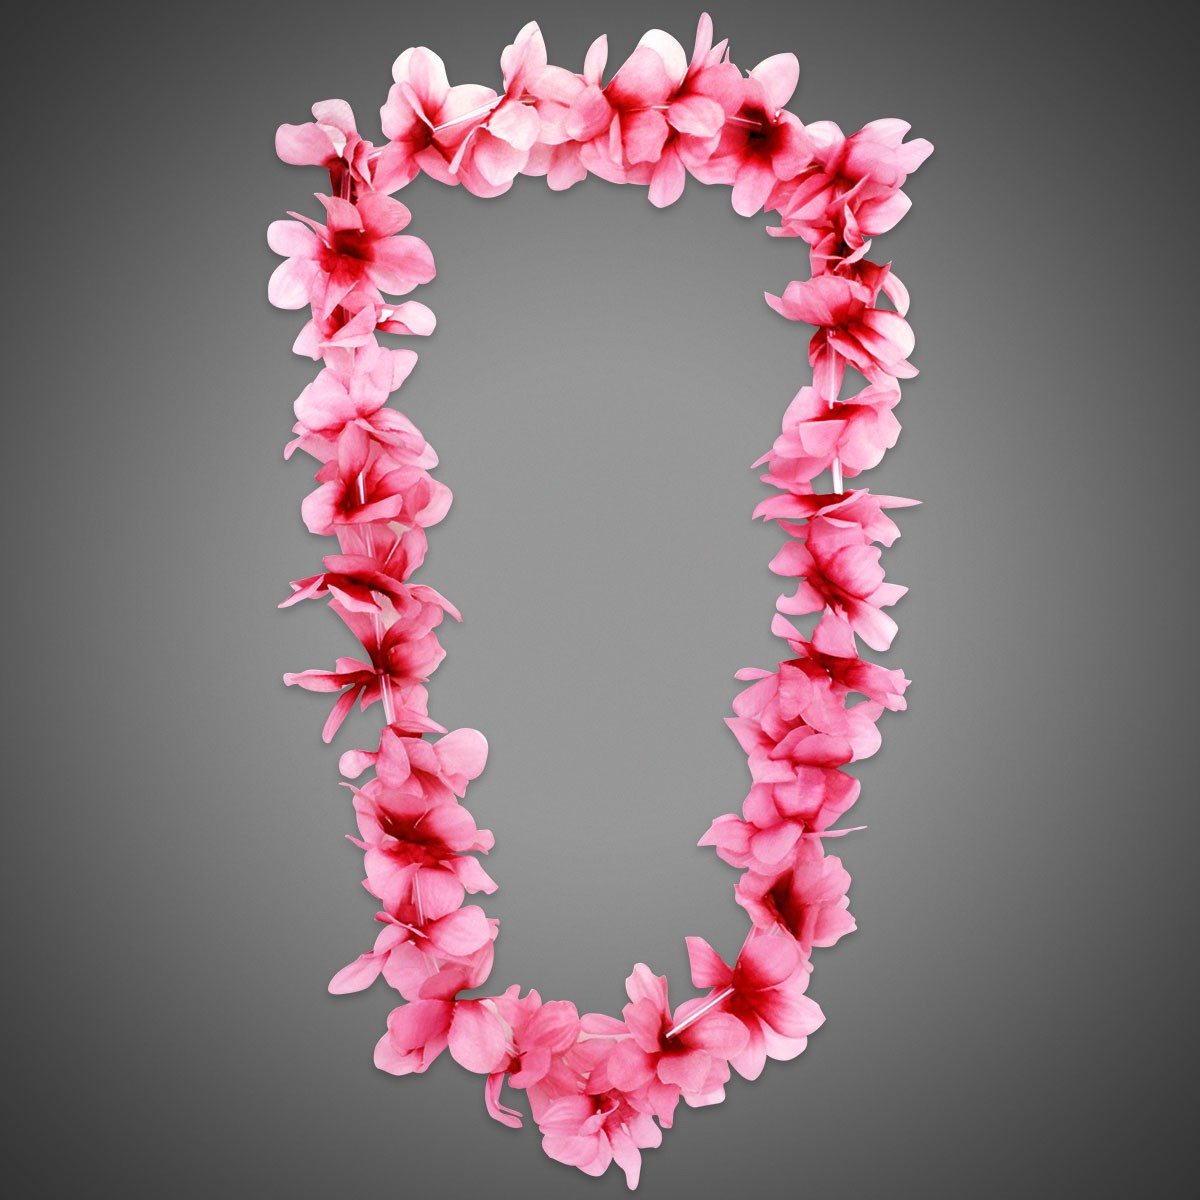 Pink Flower Leis Leis & Beads Products Under $1 00